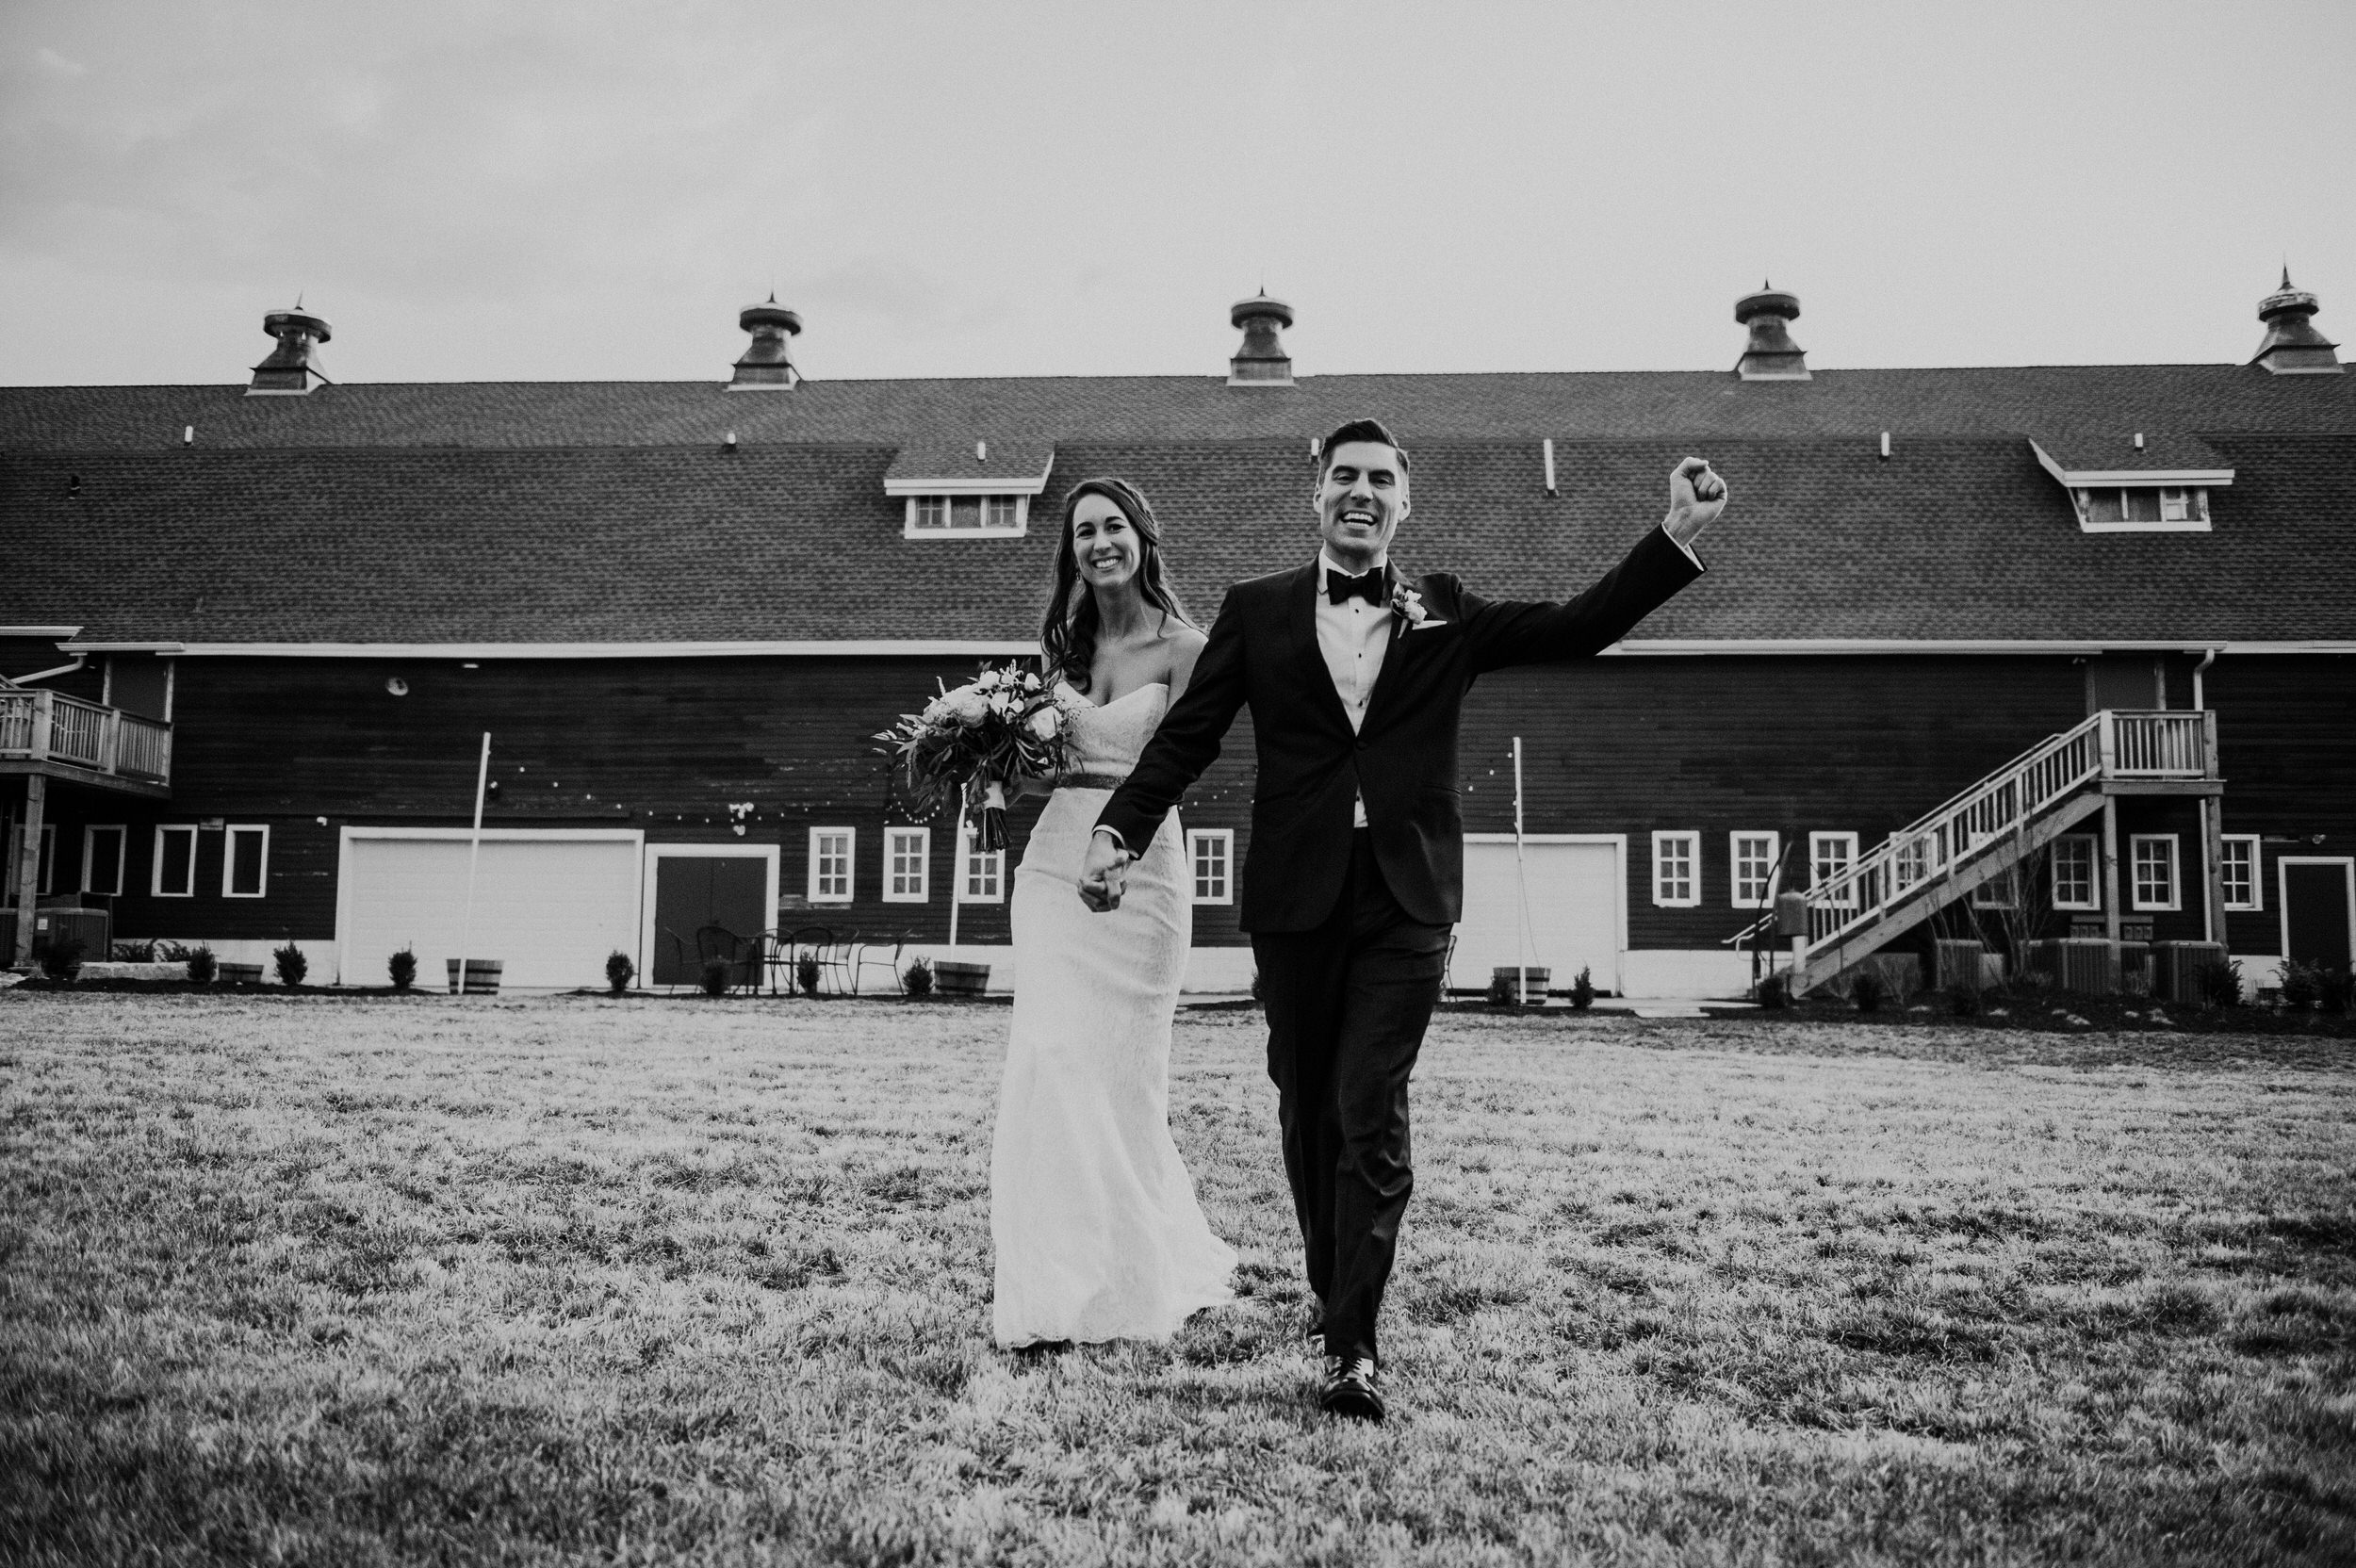 The Barn at the Ackerhurst Dairy Farm Omaha Nebraska Wedding Kaylie Sirek Photography087.jpg